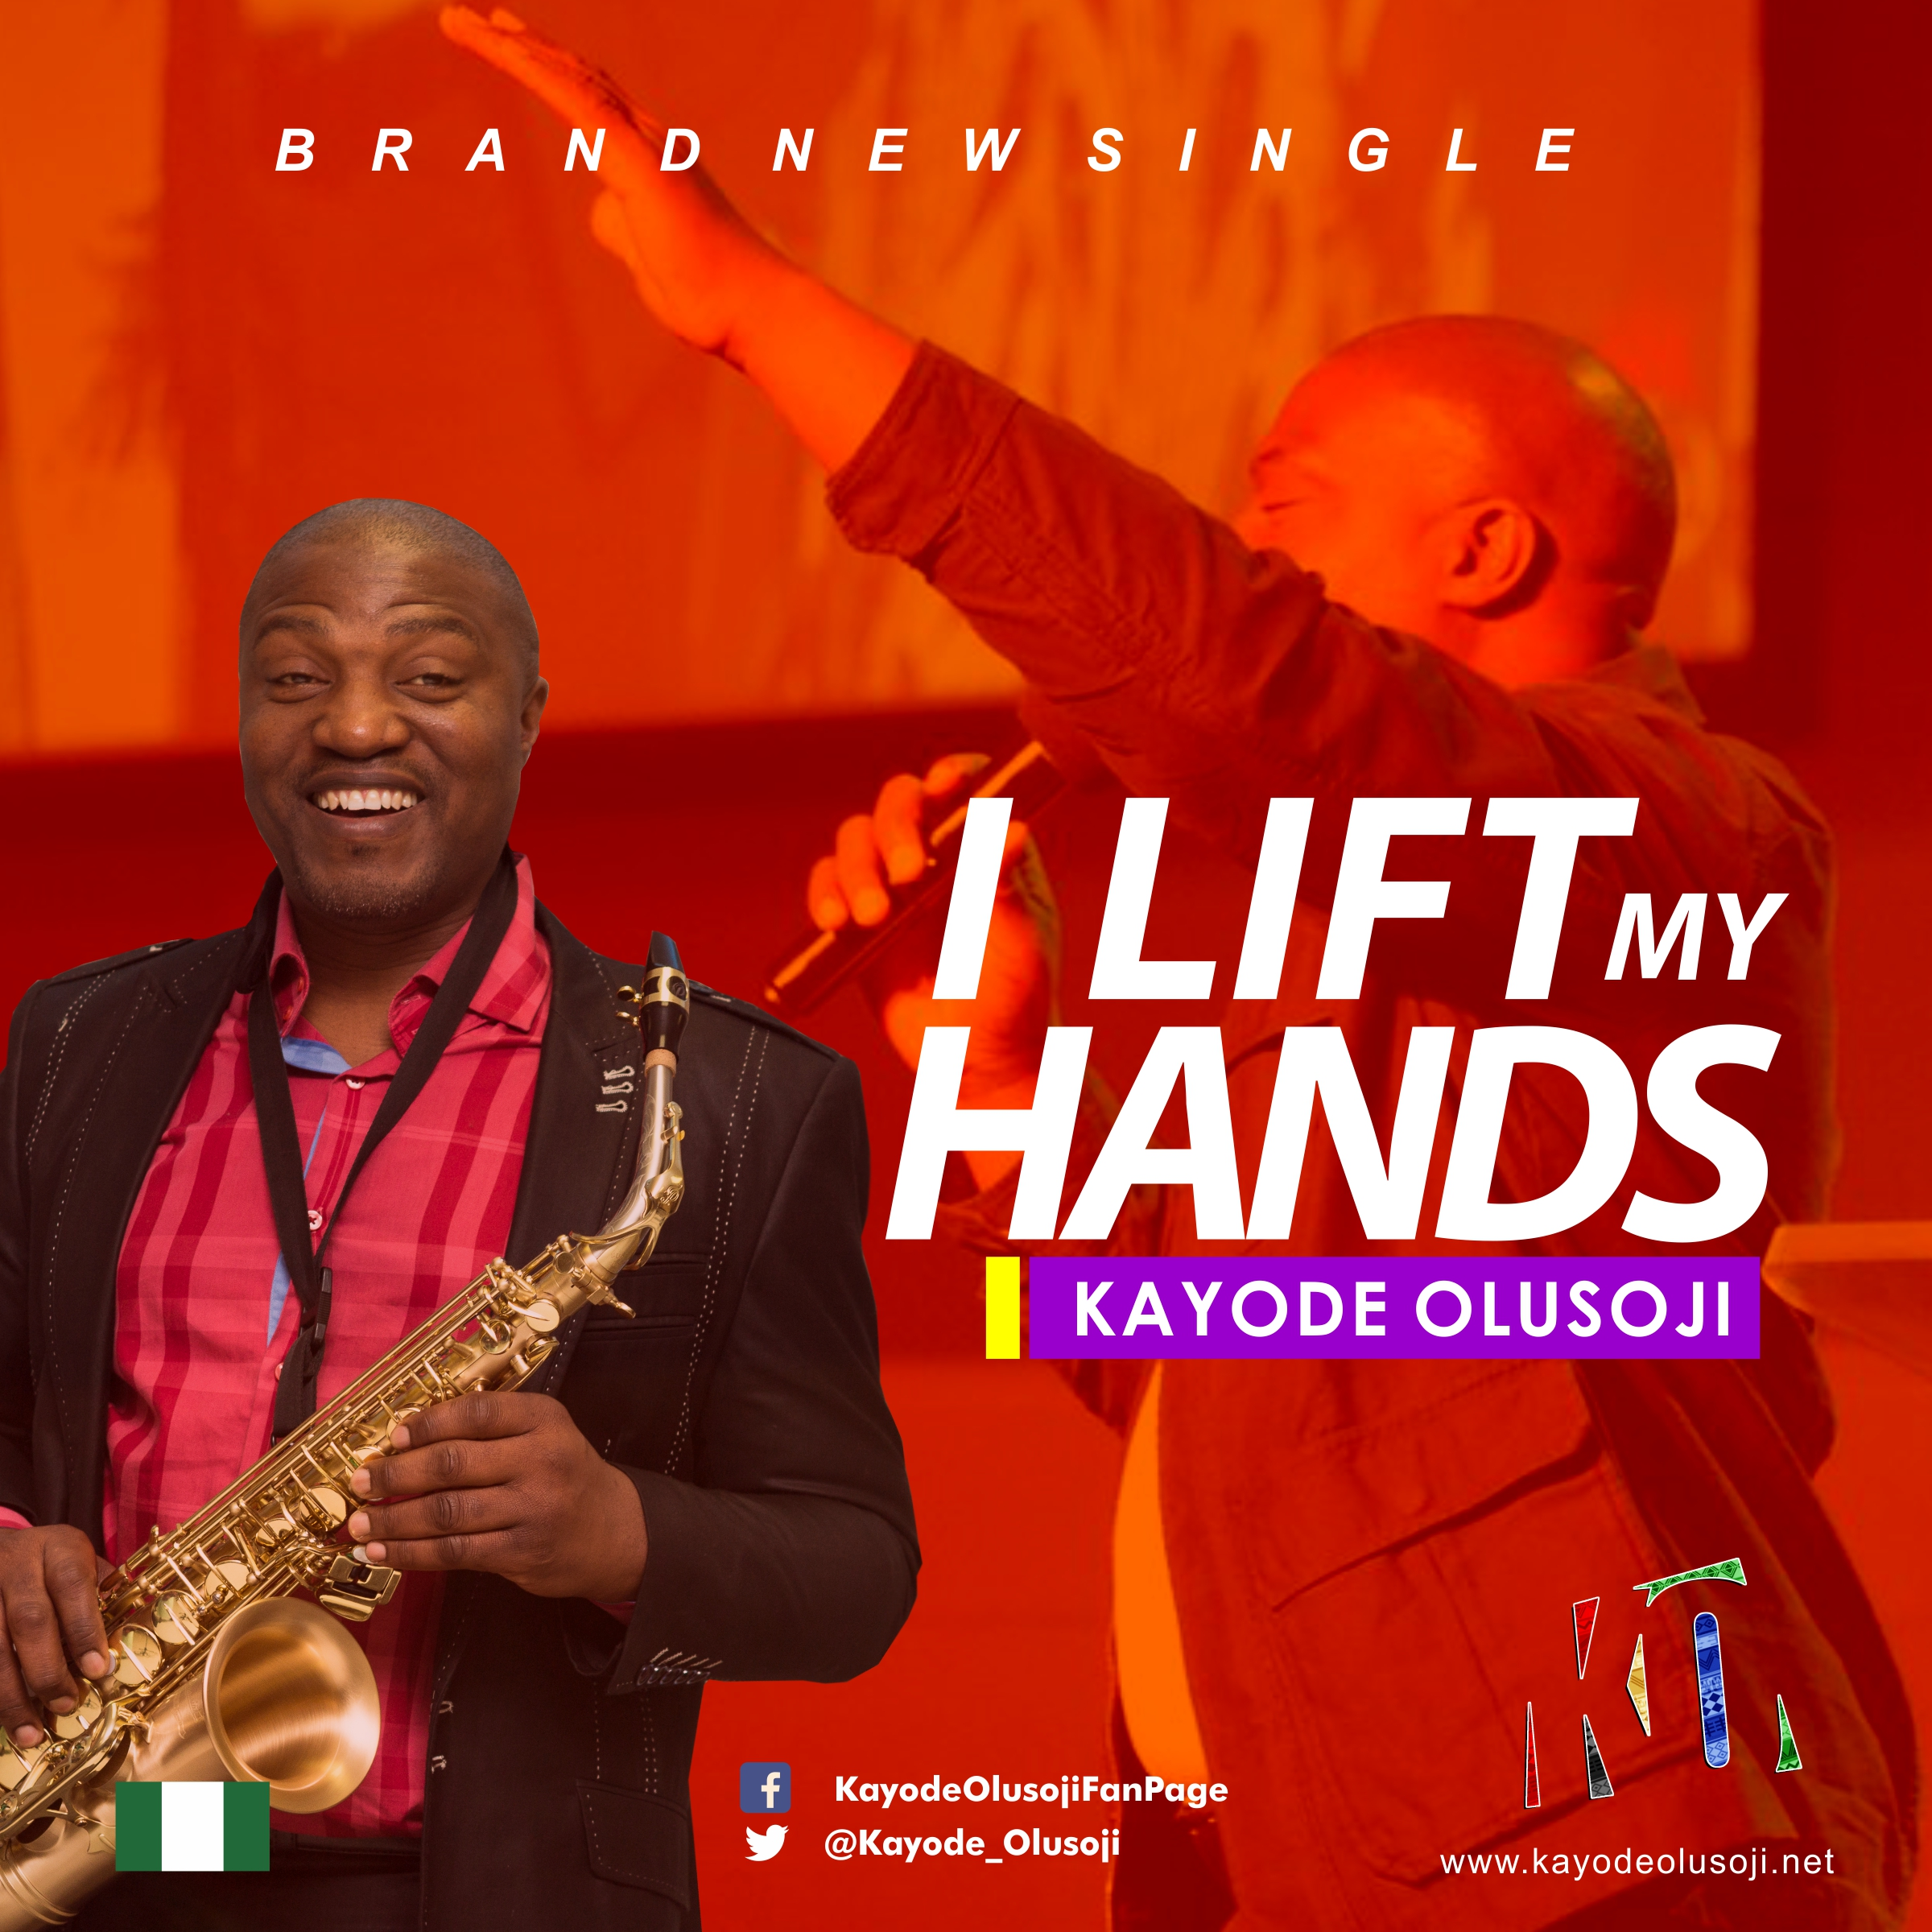 I Lift My Hands - Kayode Olusoji